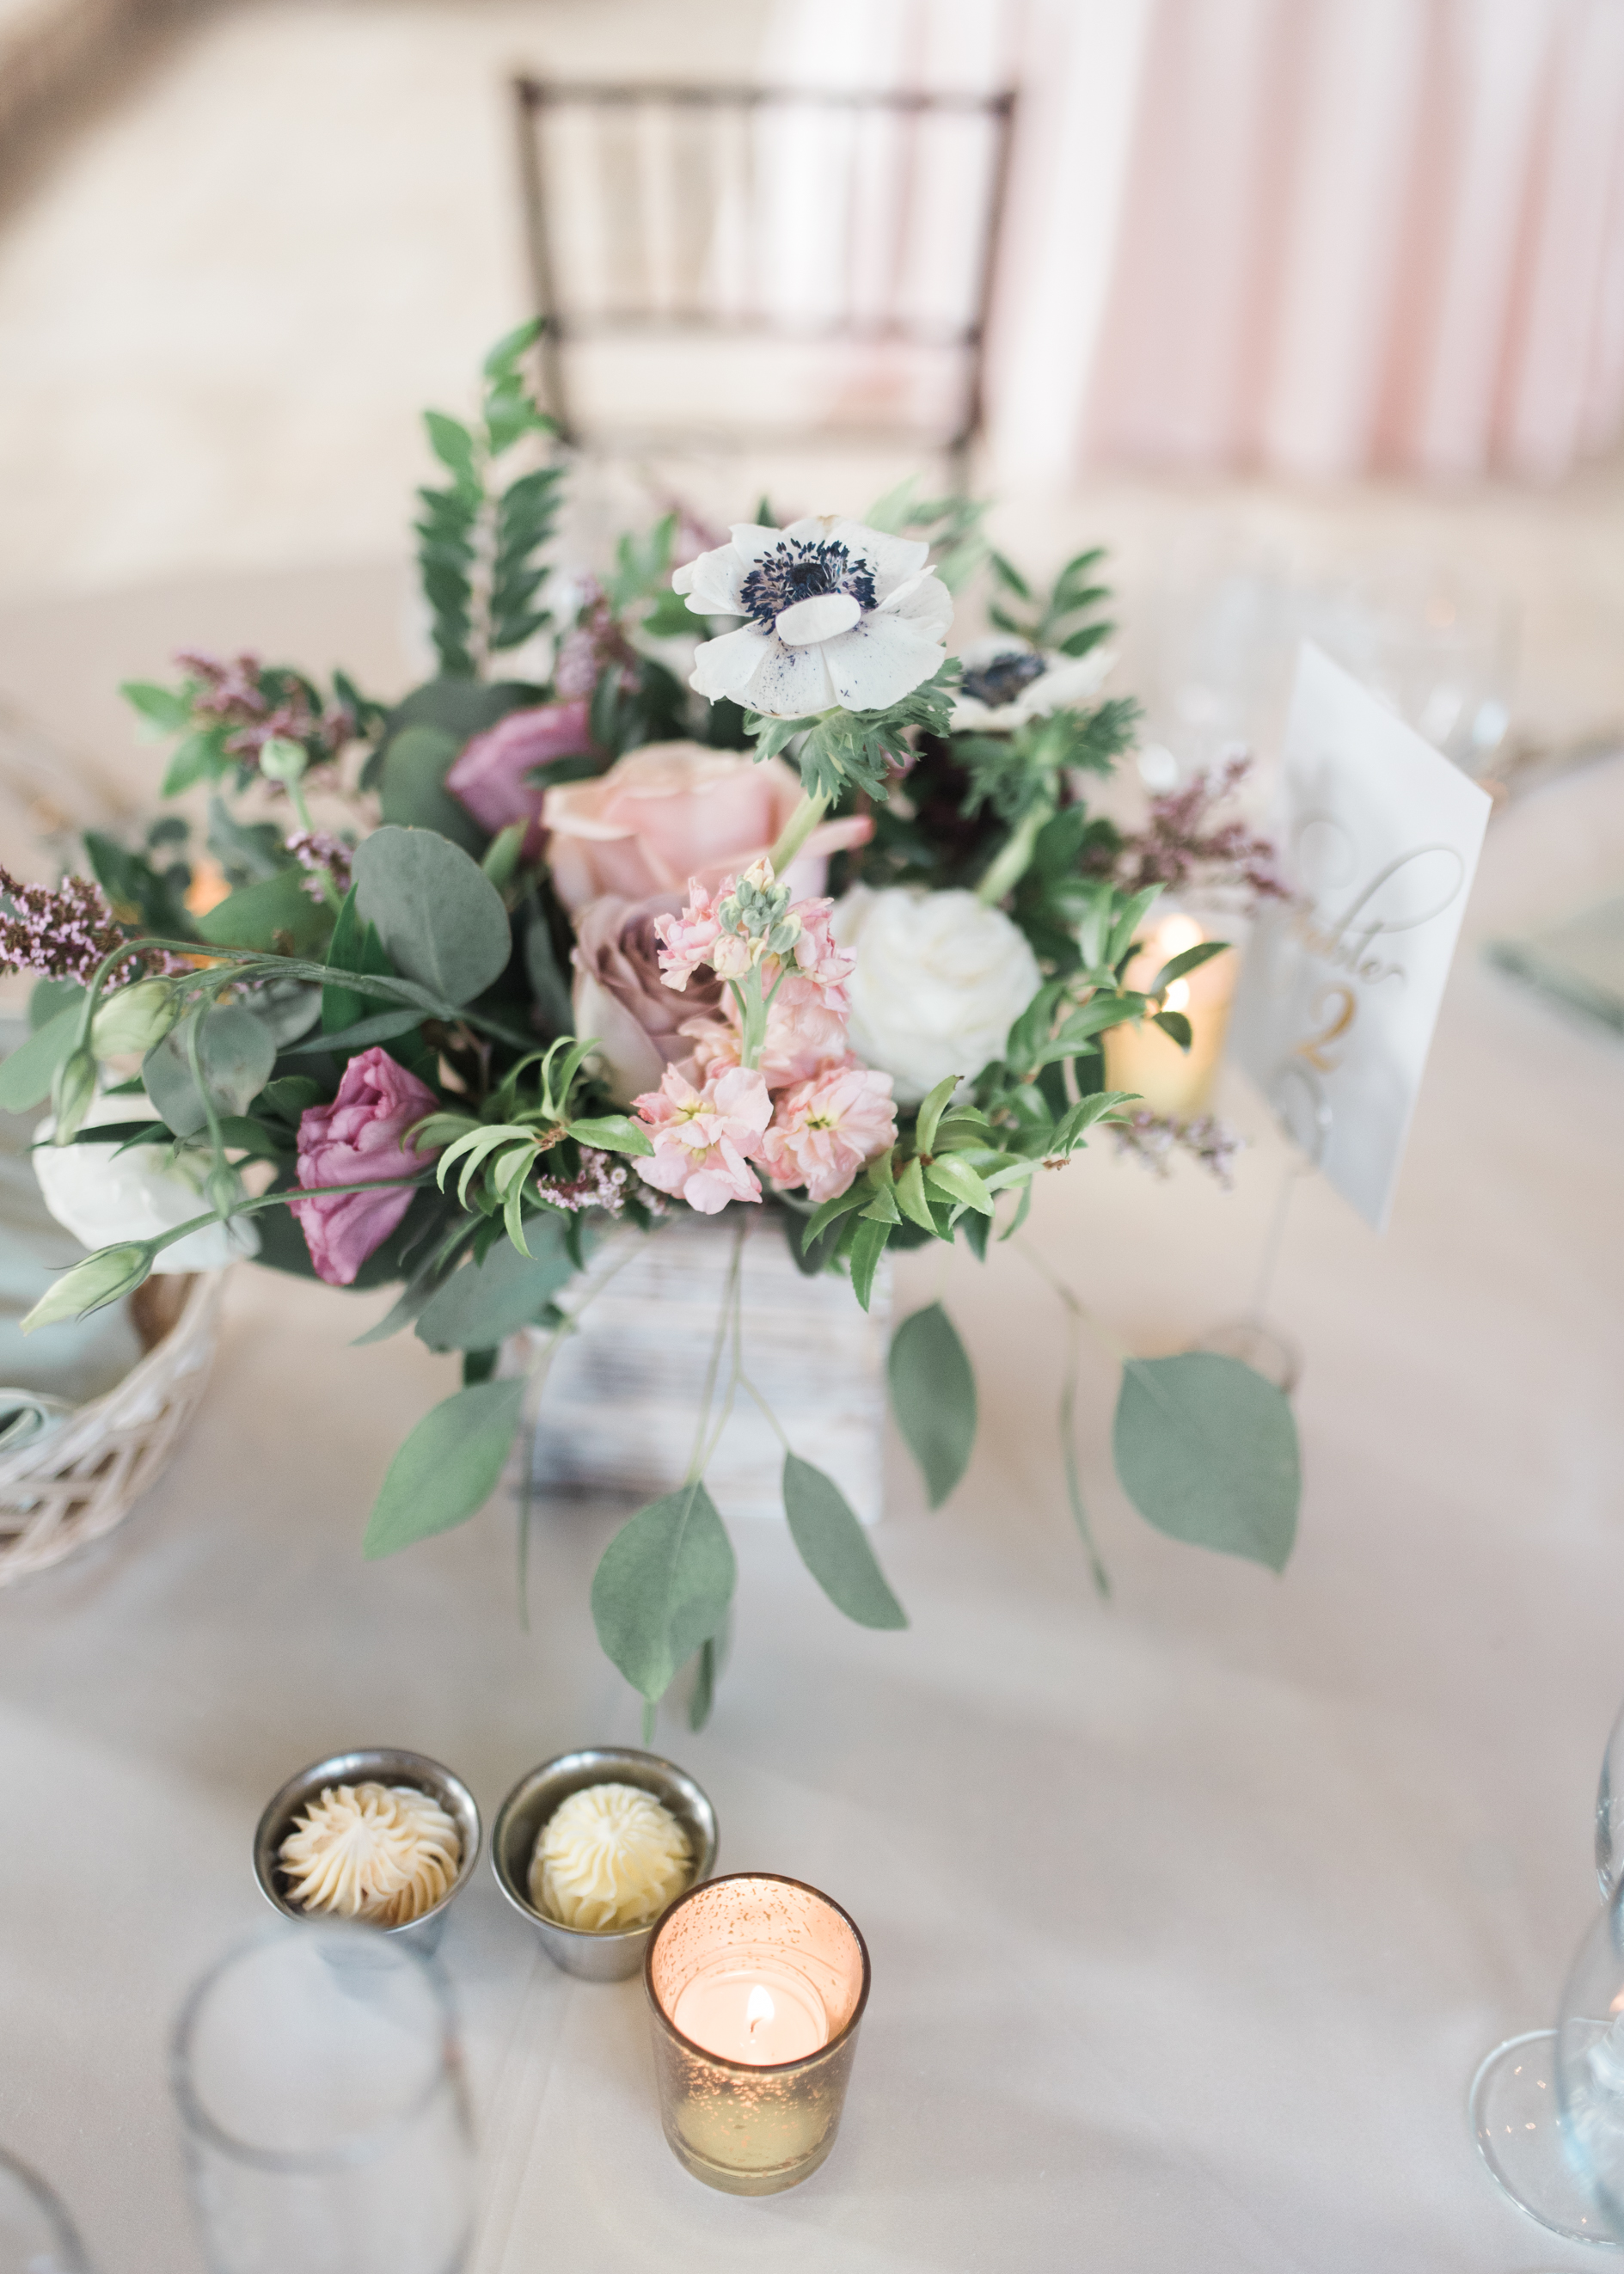 Flowers by lace and lilies, bridal bouquet, votives, candles, tablescapes, centerpieces, wedding flowers, blush flowers, burgundy flowers, blush bridesmaid dresses, military wedding, wedding photography, cake flowers